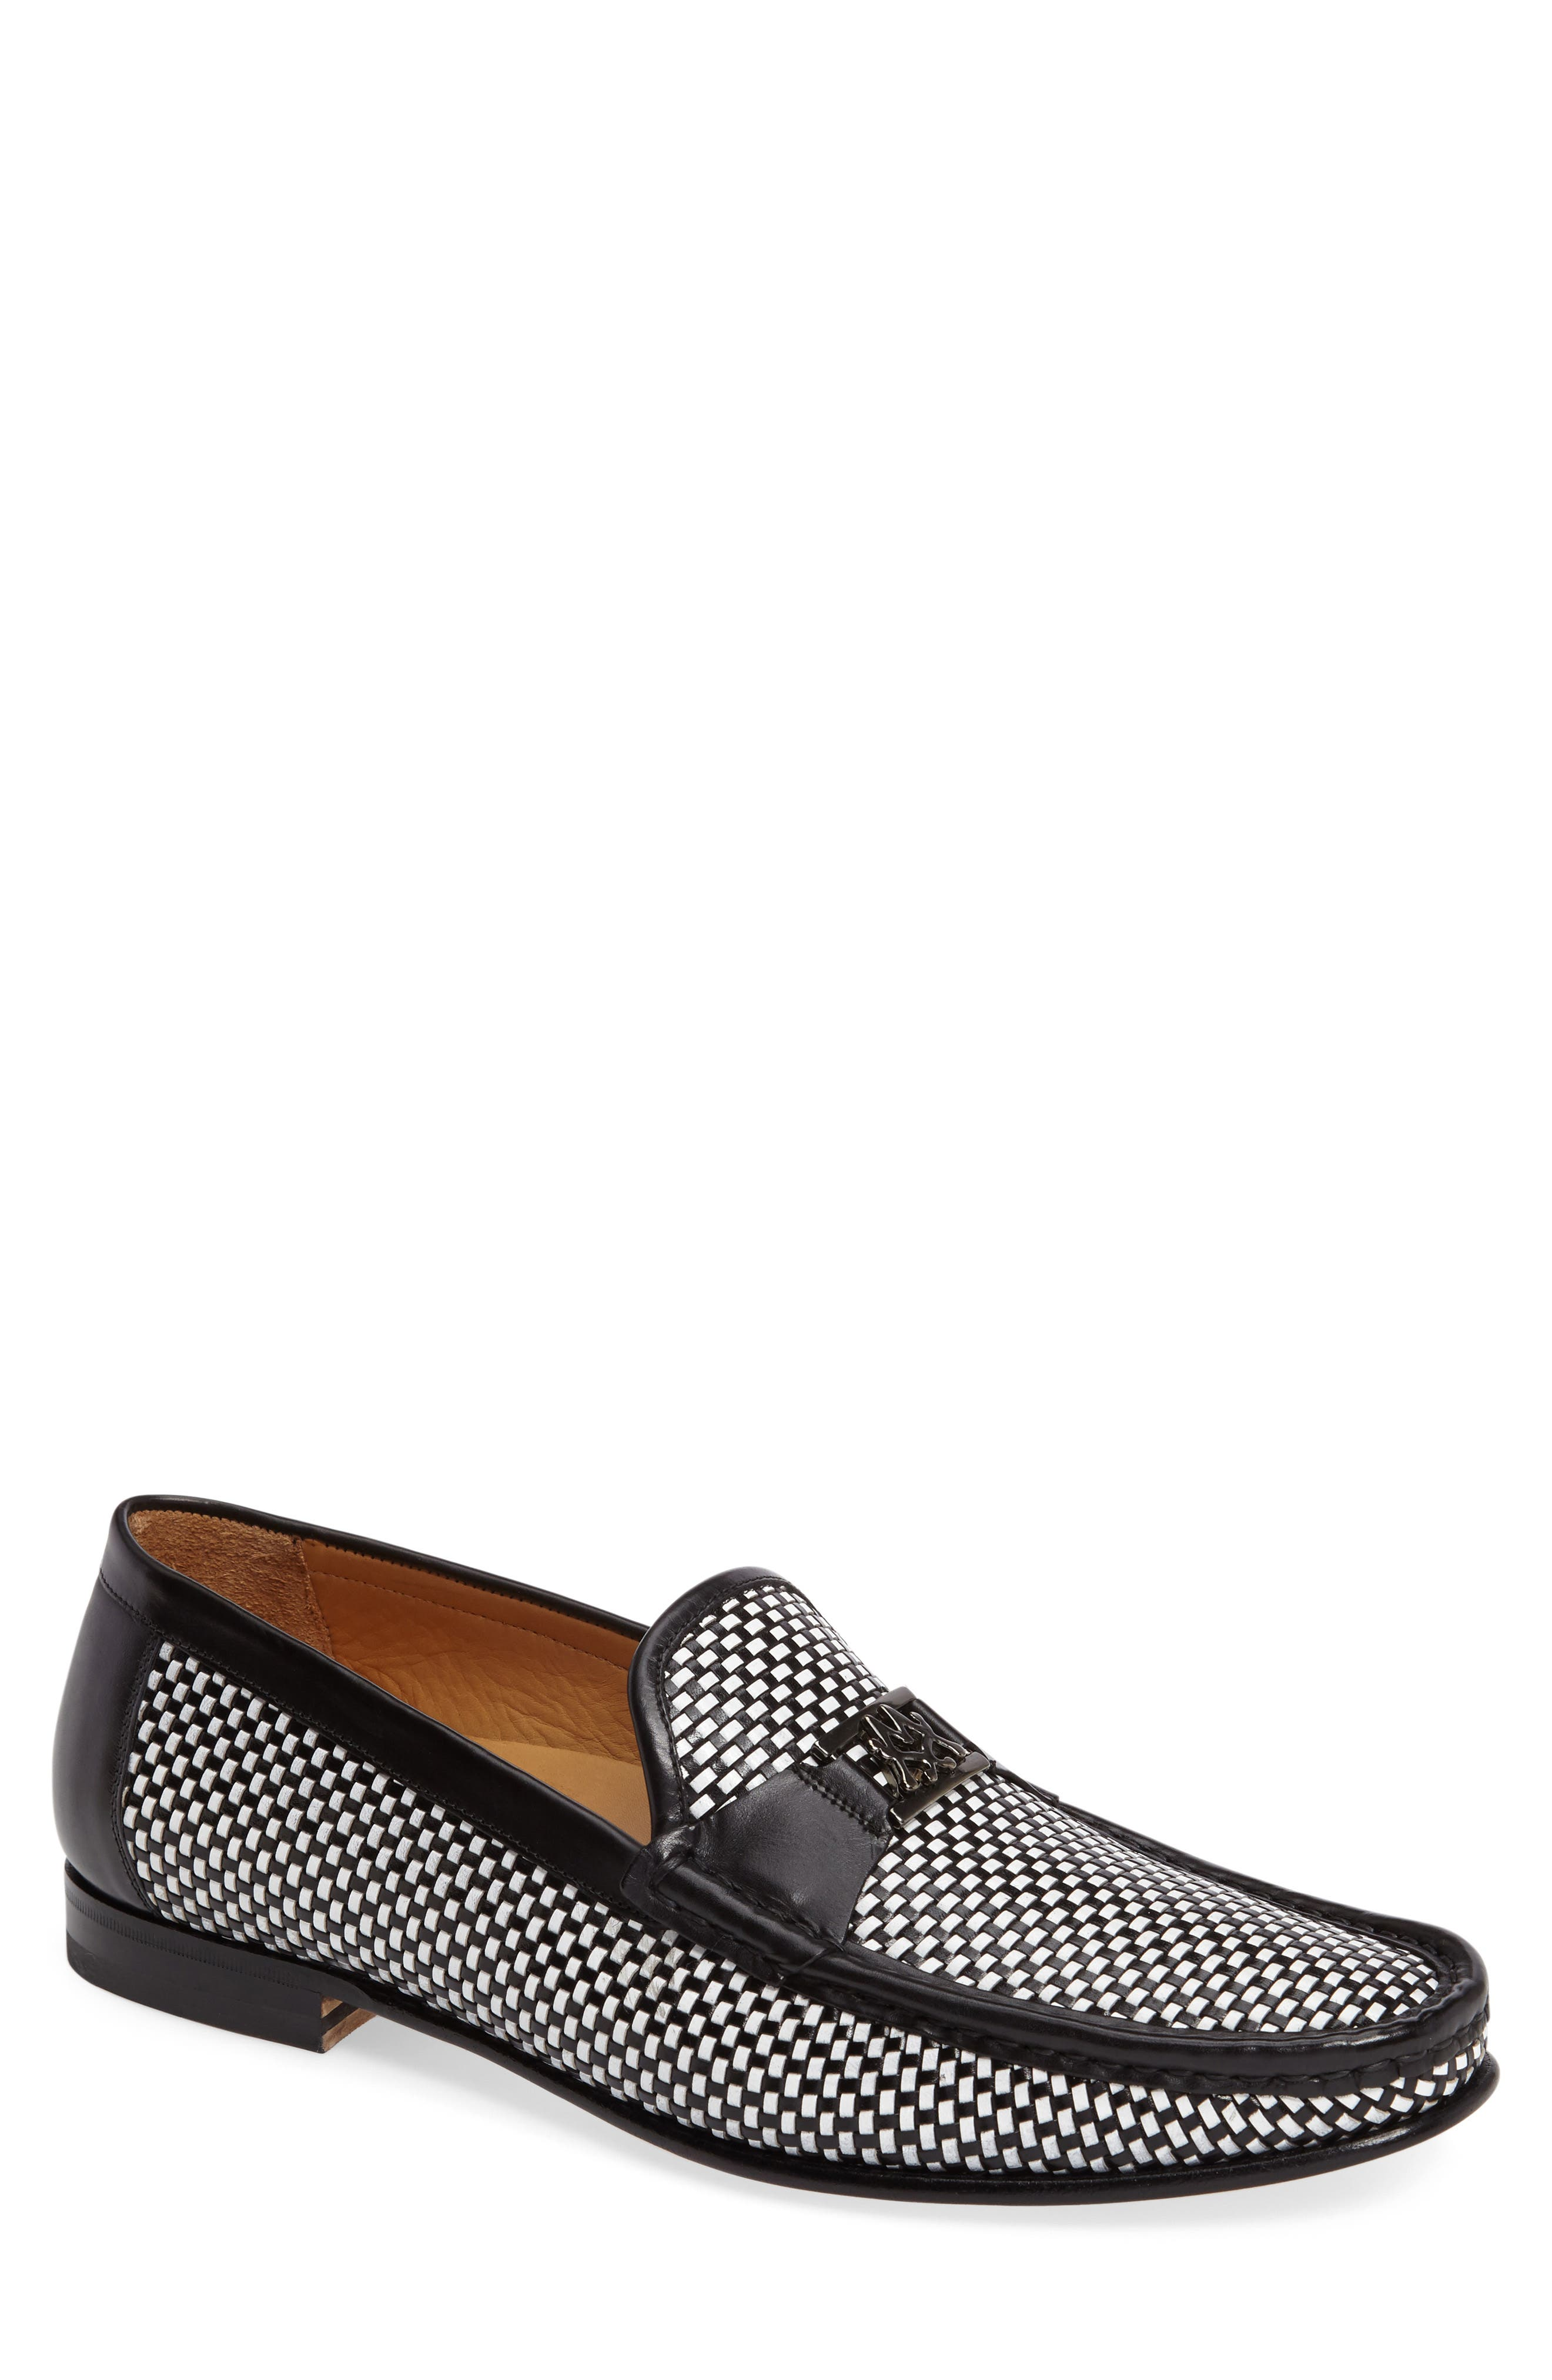 Hallman Woven Loafer,                             Main thumbnail 1, color,                             BLACK/ WHITE LEATHER